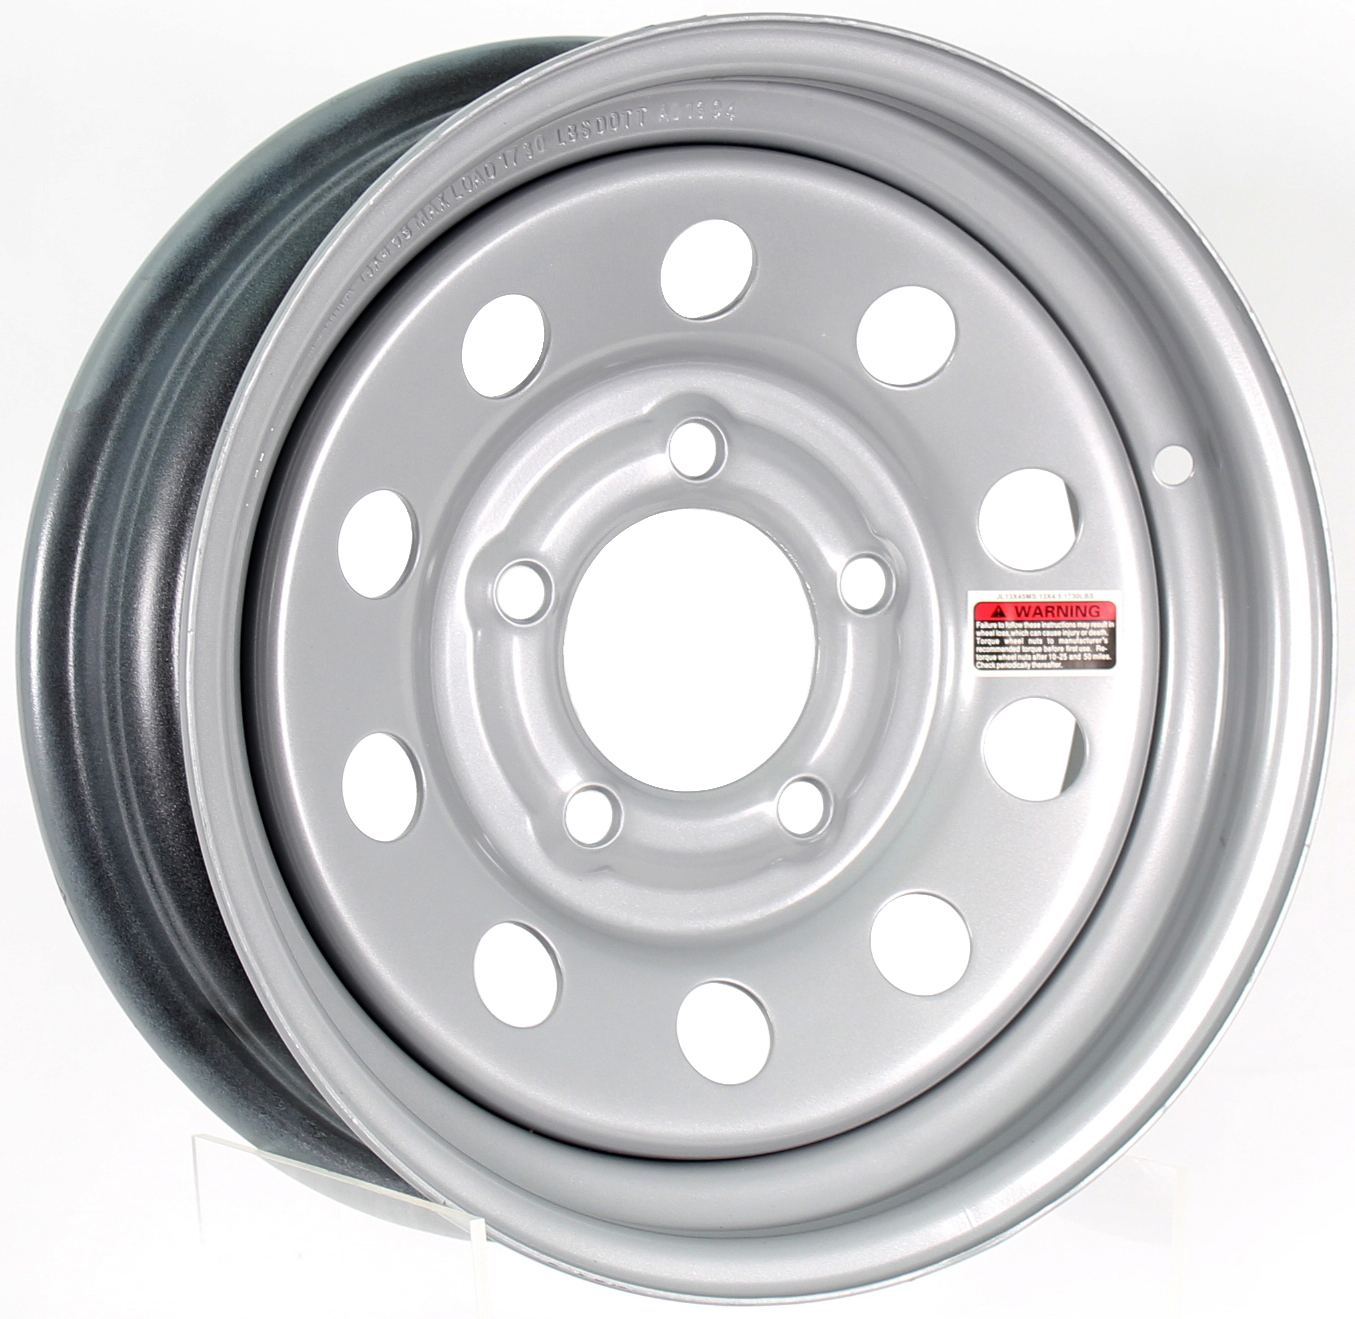 12x4 5-Lug Silver Mod Steel Trailer Wheel Image